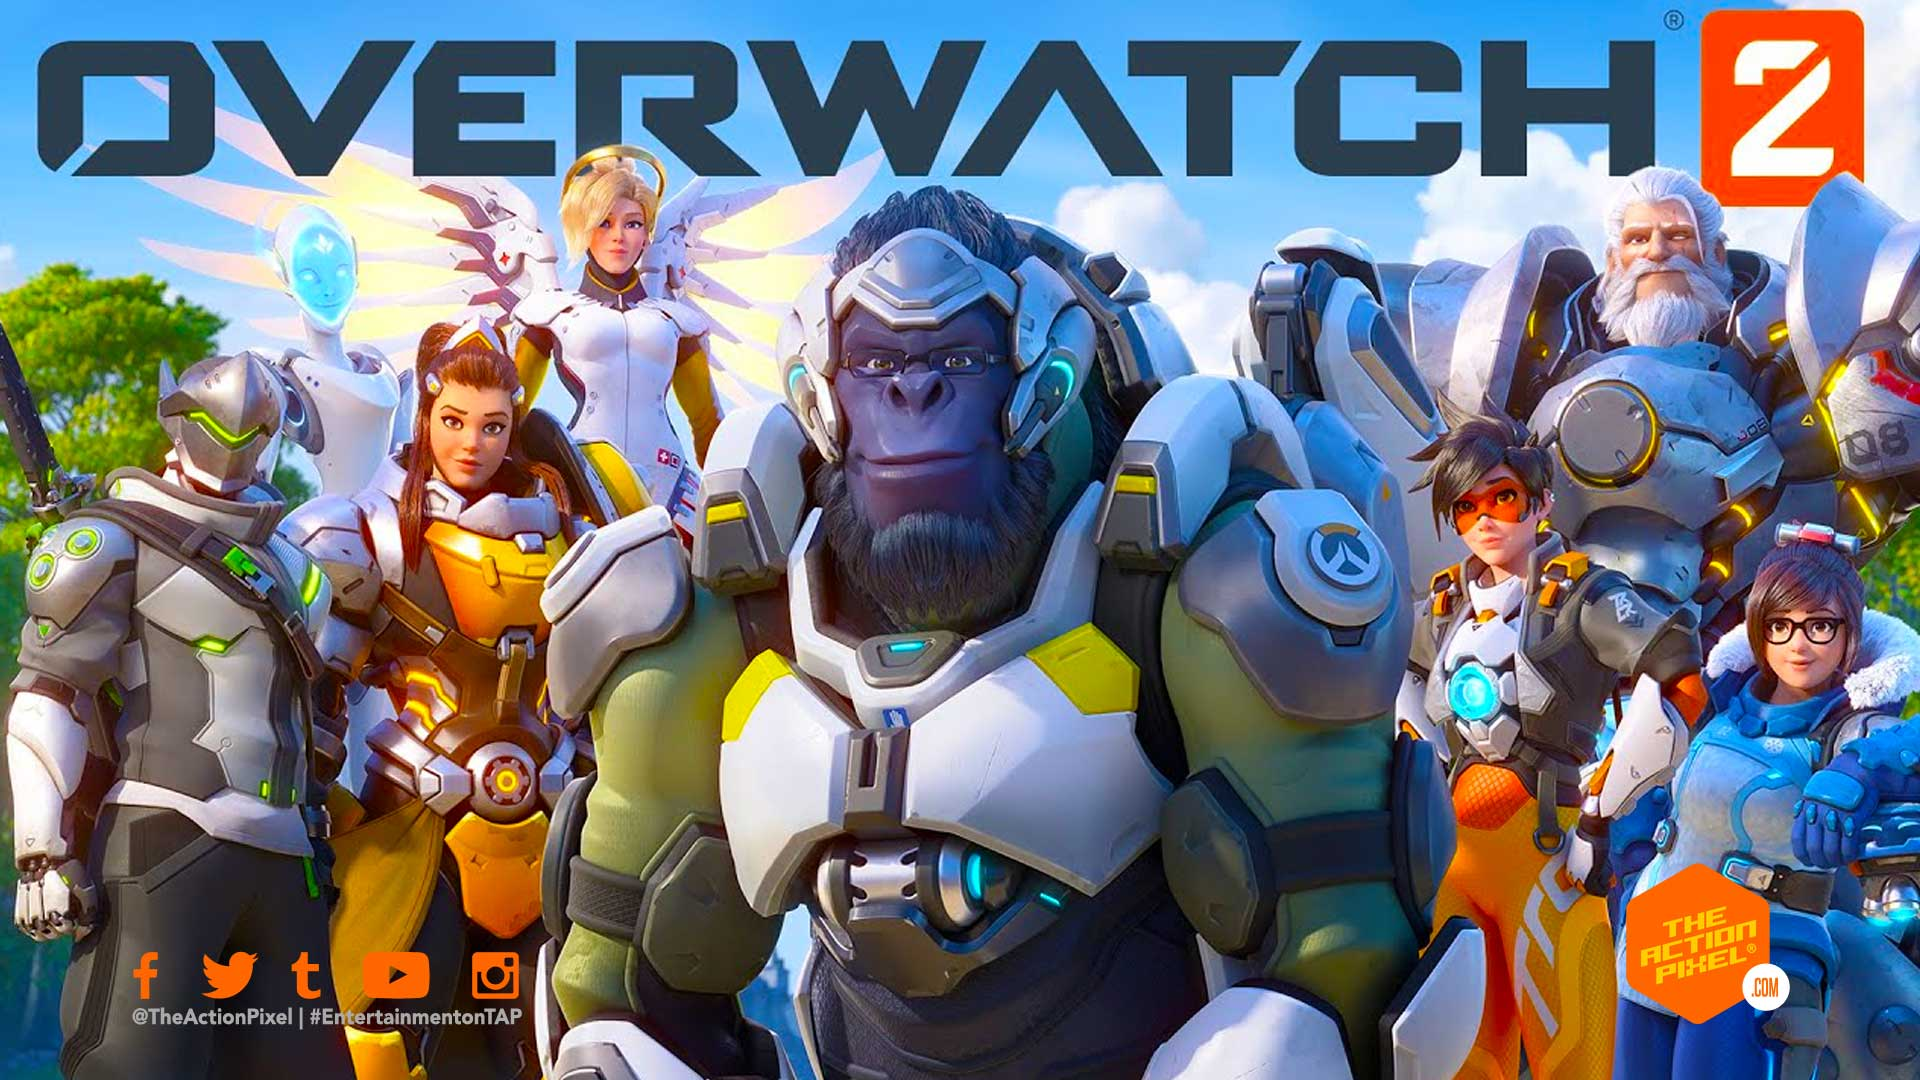 overwatch 2, zero hour, overwatch, overwatch 2 cinematic trailer, entertainment on tap, the action pixel, blizzard entertainment,